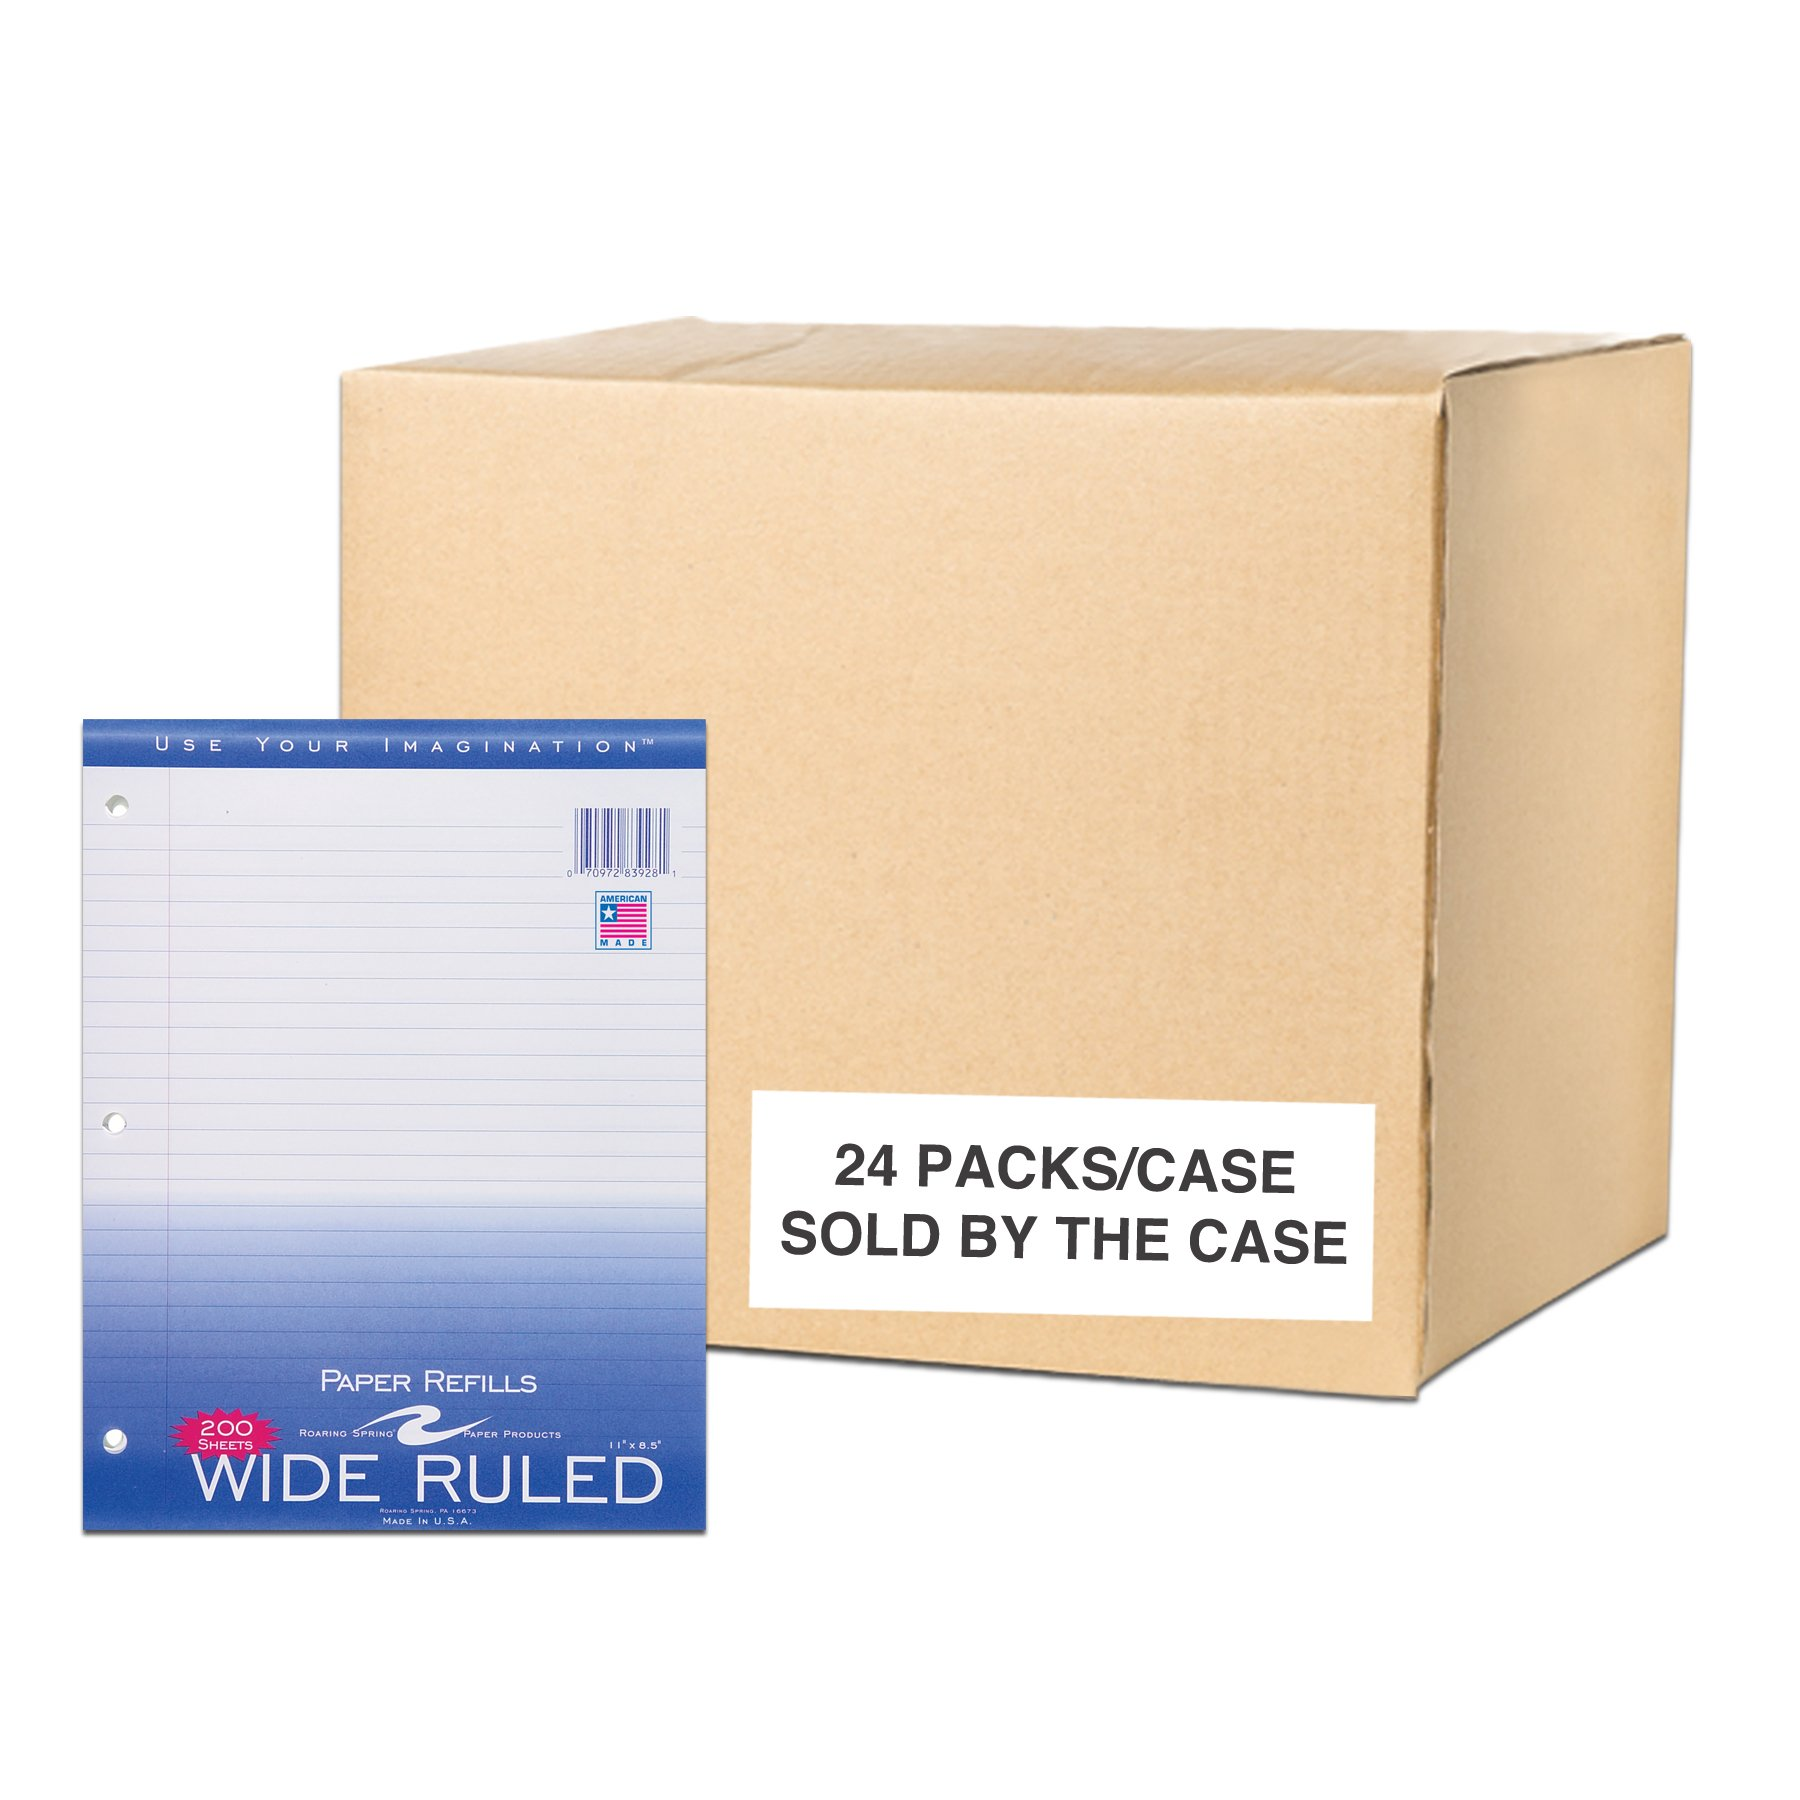 Case of 24 Packs of Looseleaf Filler Paper, 8.5''x11'', 200 Sheets of Smooth Medium Weight 15# White Paper, 3-Hole Punched, wide Ruled W/Margin